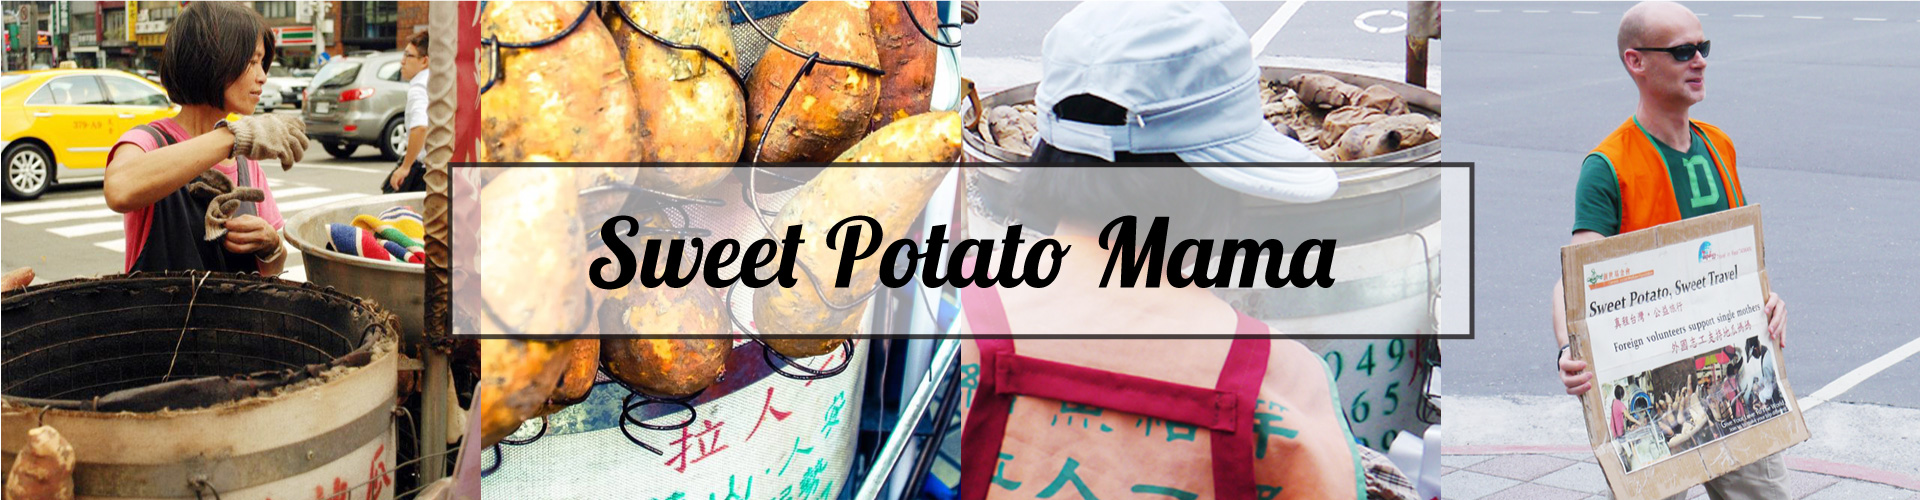 This project helps single mothers live independently by allowing them to become vendors of the traditional Taiwanese sweet potatoes. Support the mamas by helping them sell the sweet potatoes and get to know them as they teach you how to roast sweet potatoes.